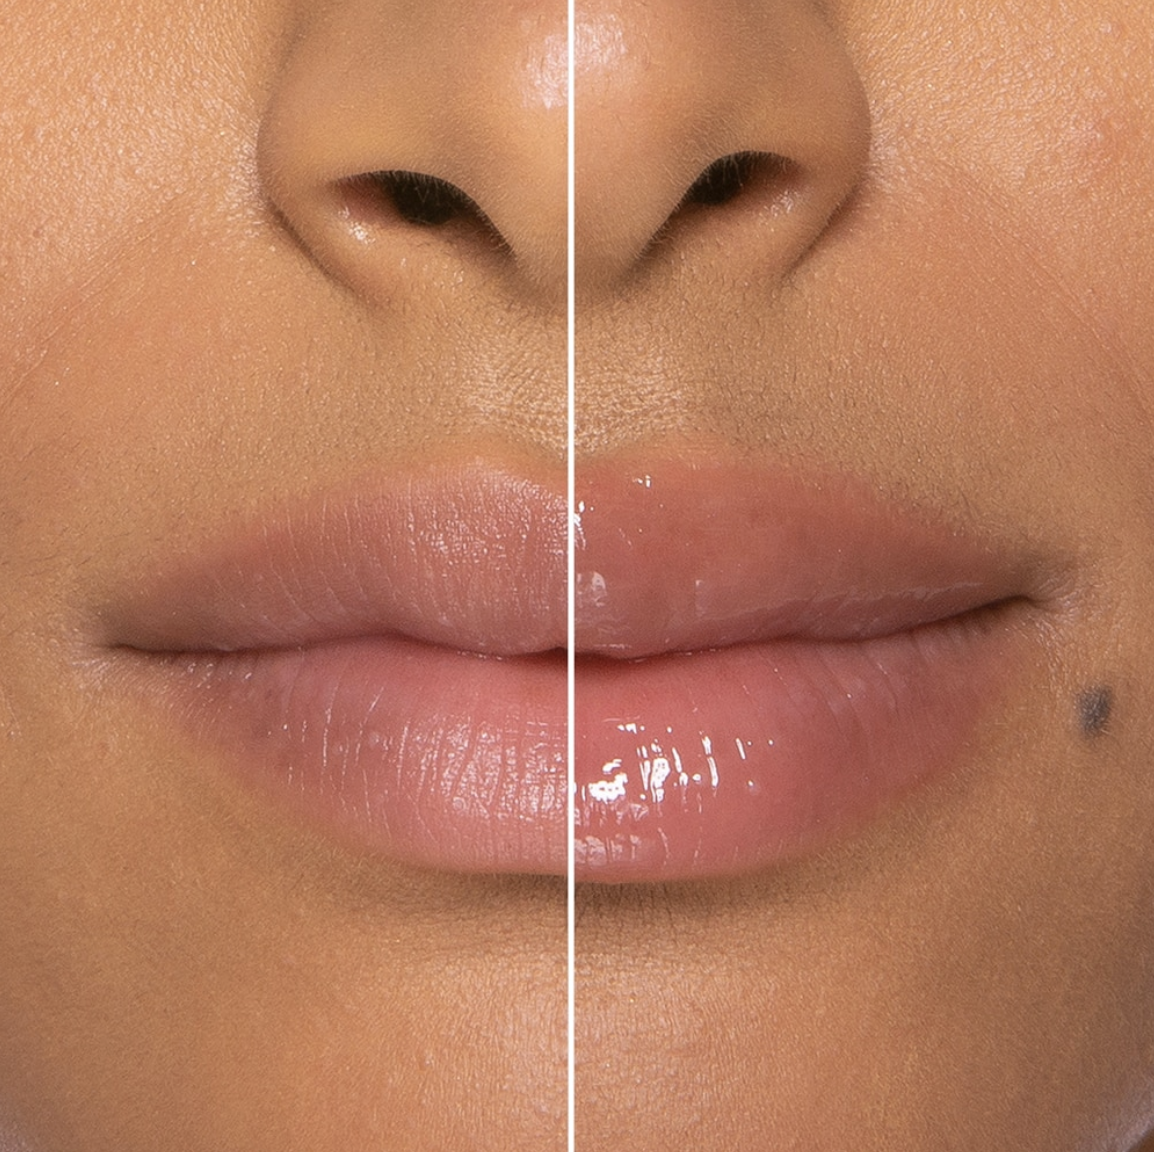 A close-up photo showing the before- and after-effect of Too Faced's Lip Injection Extreme Lip Plumper, which has gone viral on TikTok.